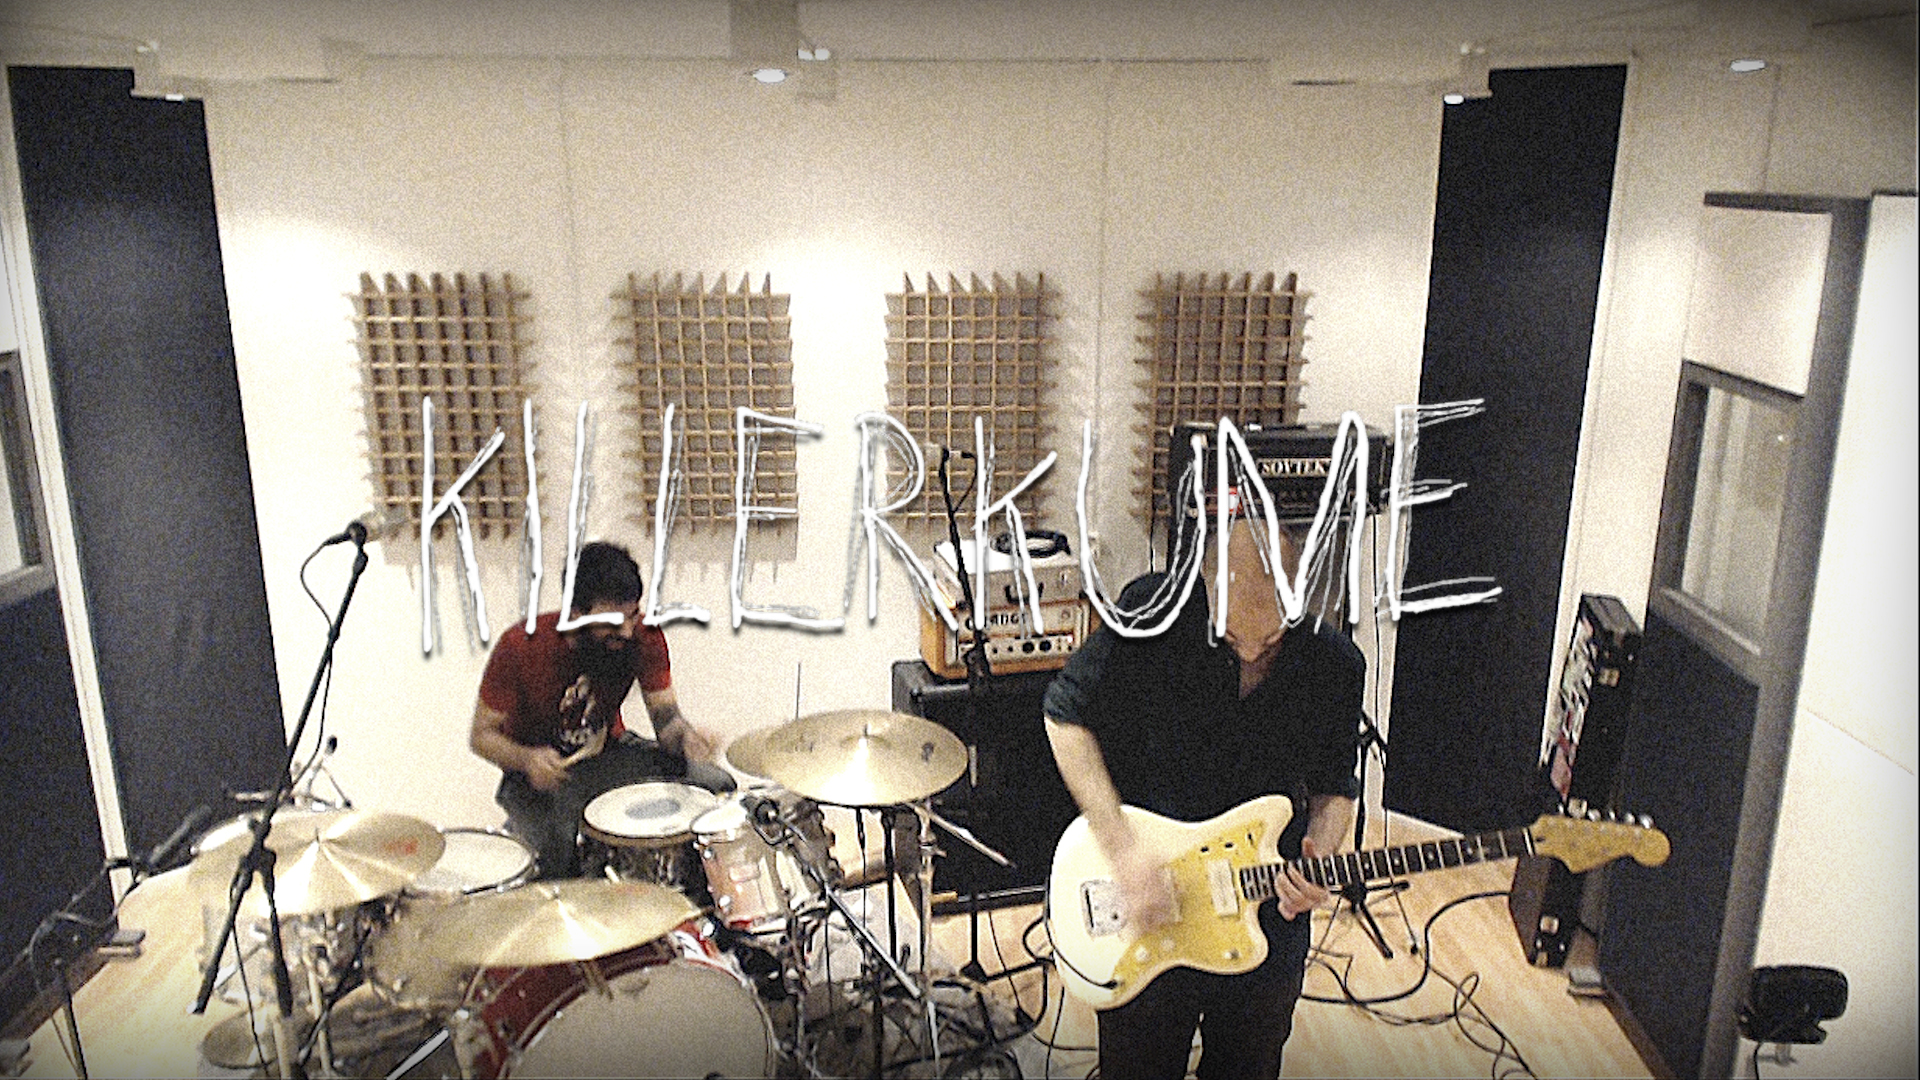 Killerkume – Experimental Noise Rock – Bilbao, Spain